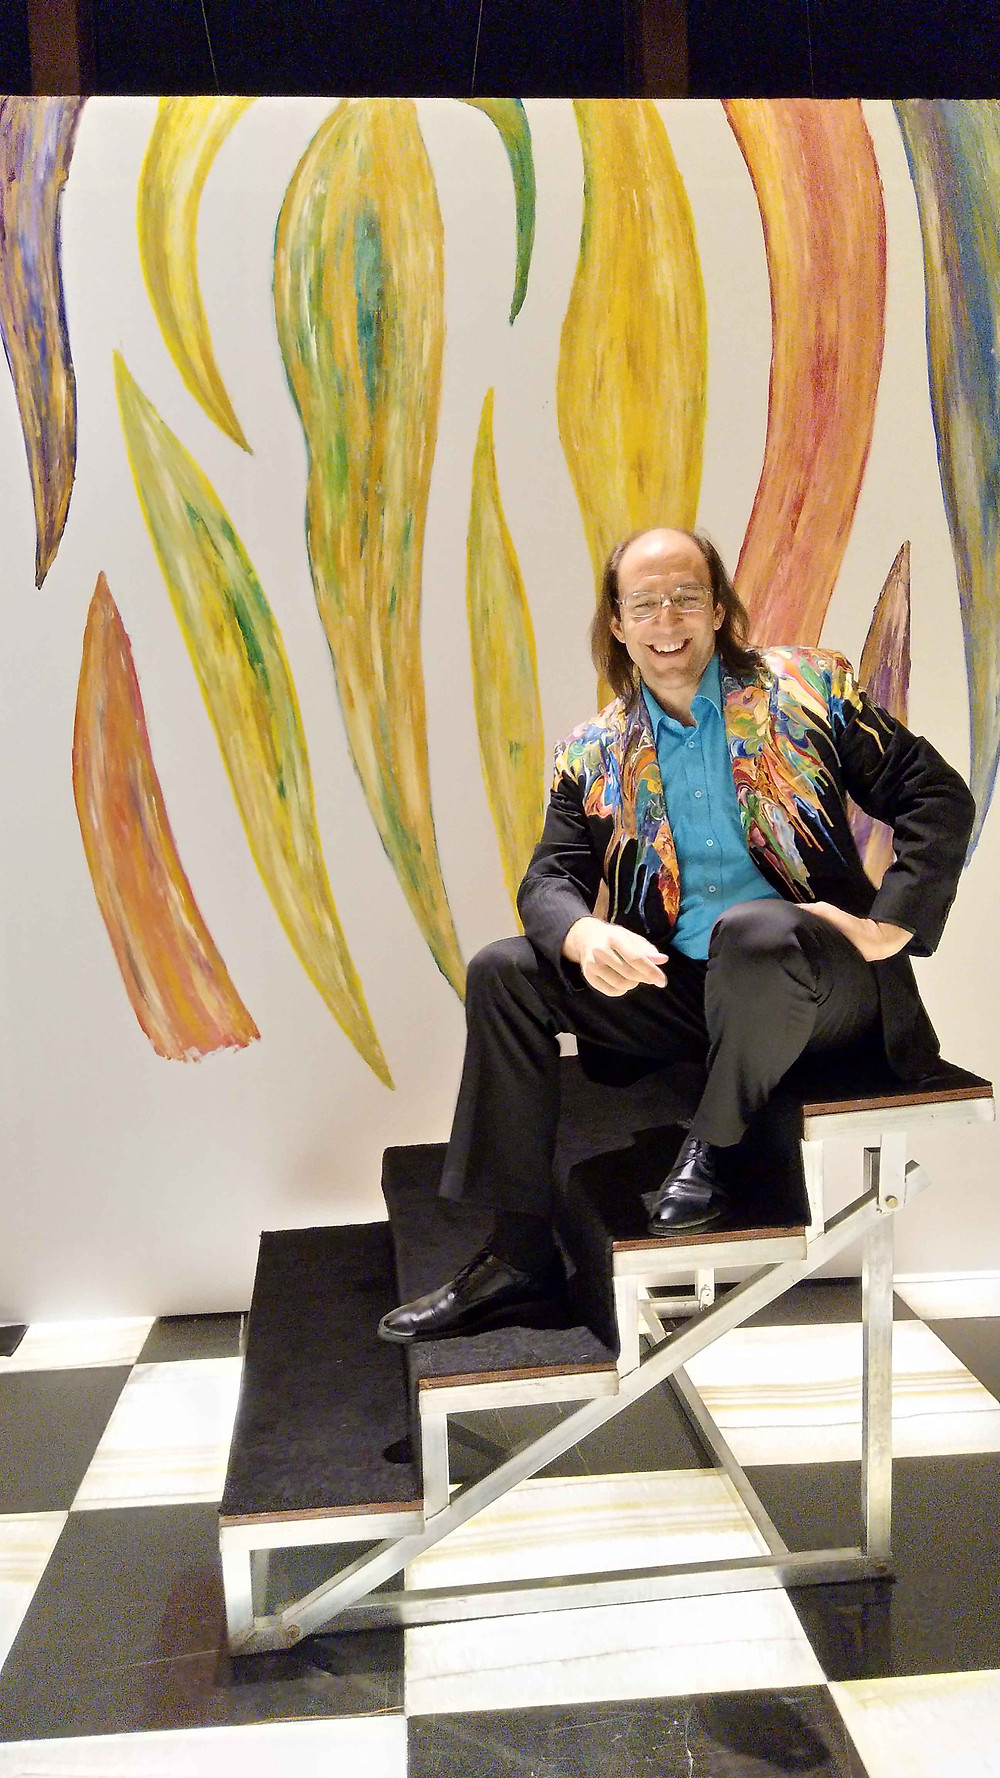 Antonio Wehrli in front of his Live painting at Armani Casa on July 21, 2017